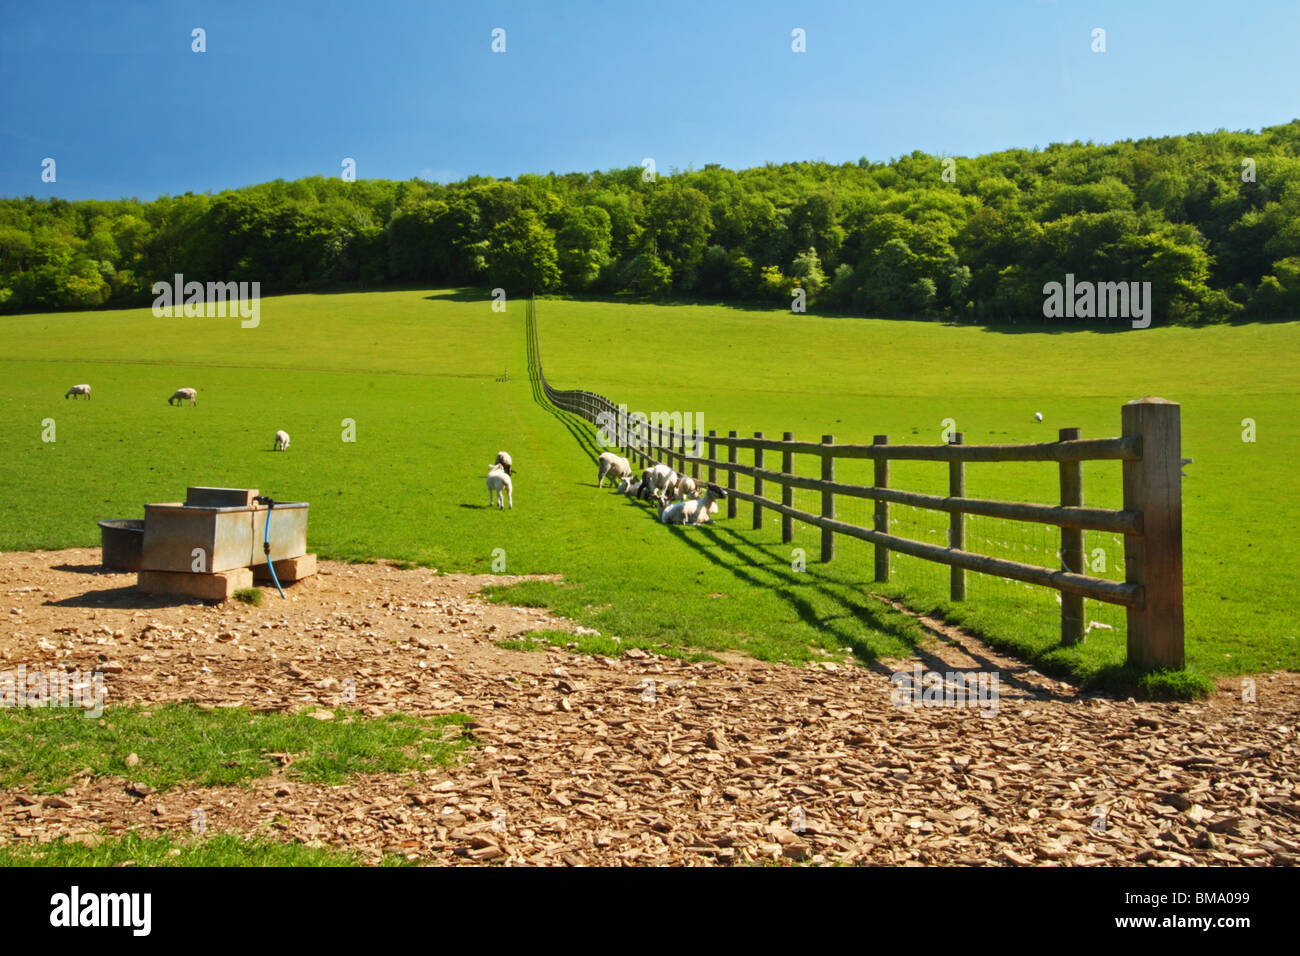 A field of sheep alongside Chequers Lane, Leading to Fingest, The Chilterns, Buckinghamshire, United Kingdom. - Stock Image